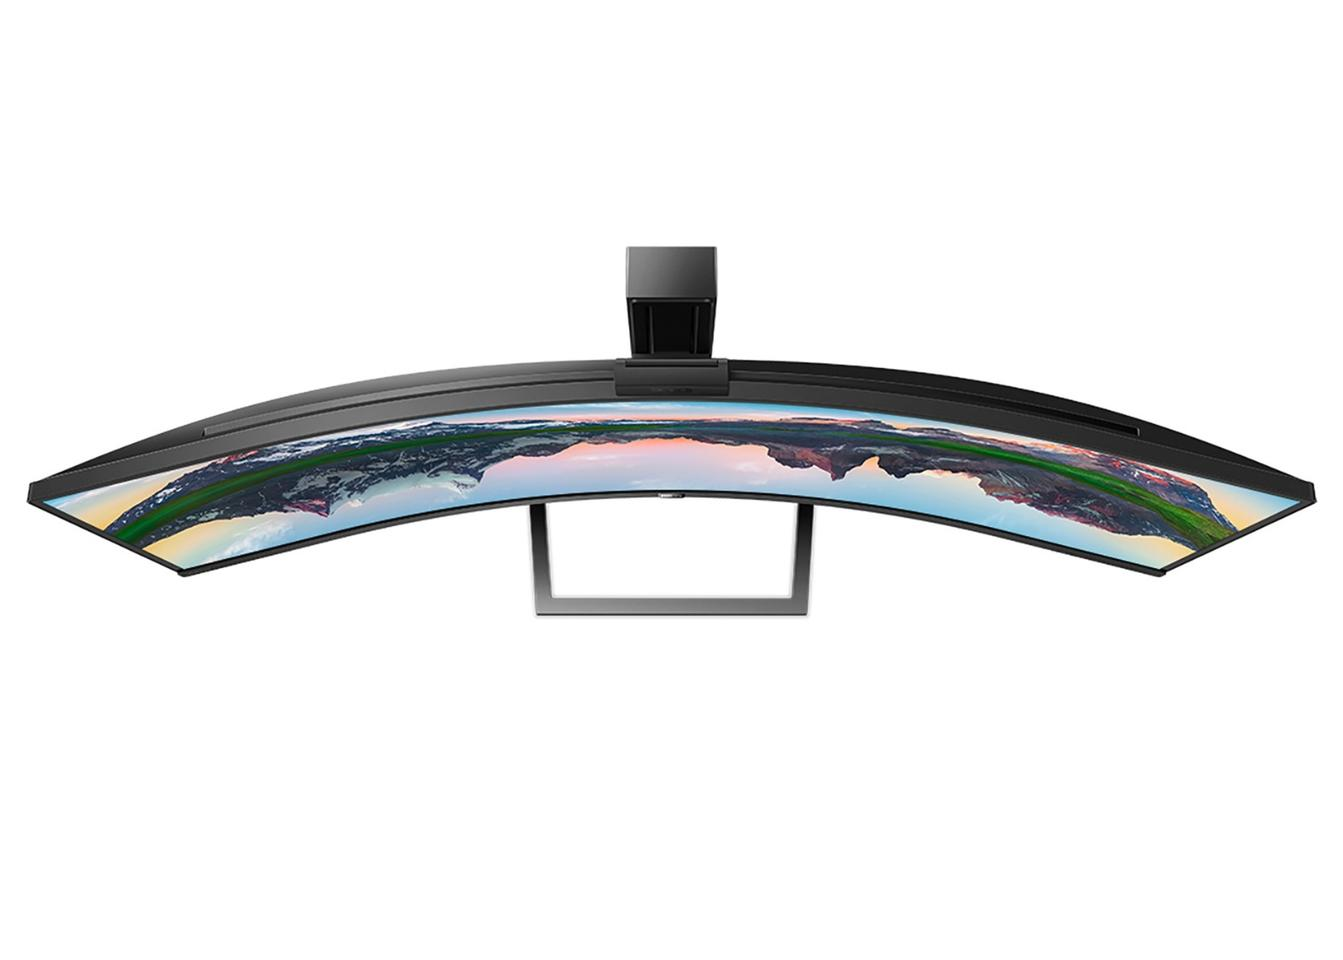 The new Philips monitors feature a webcam that pops up from the casing